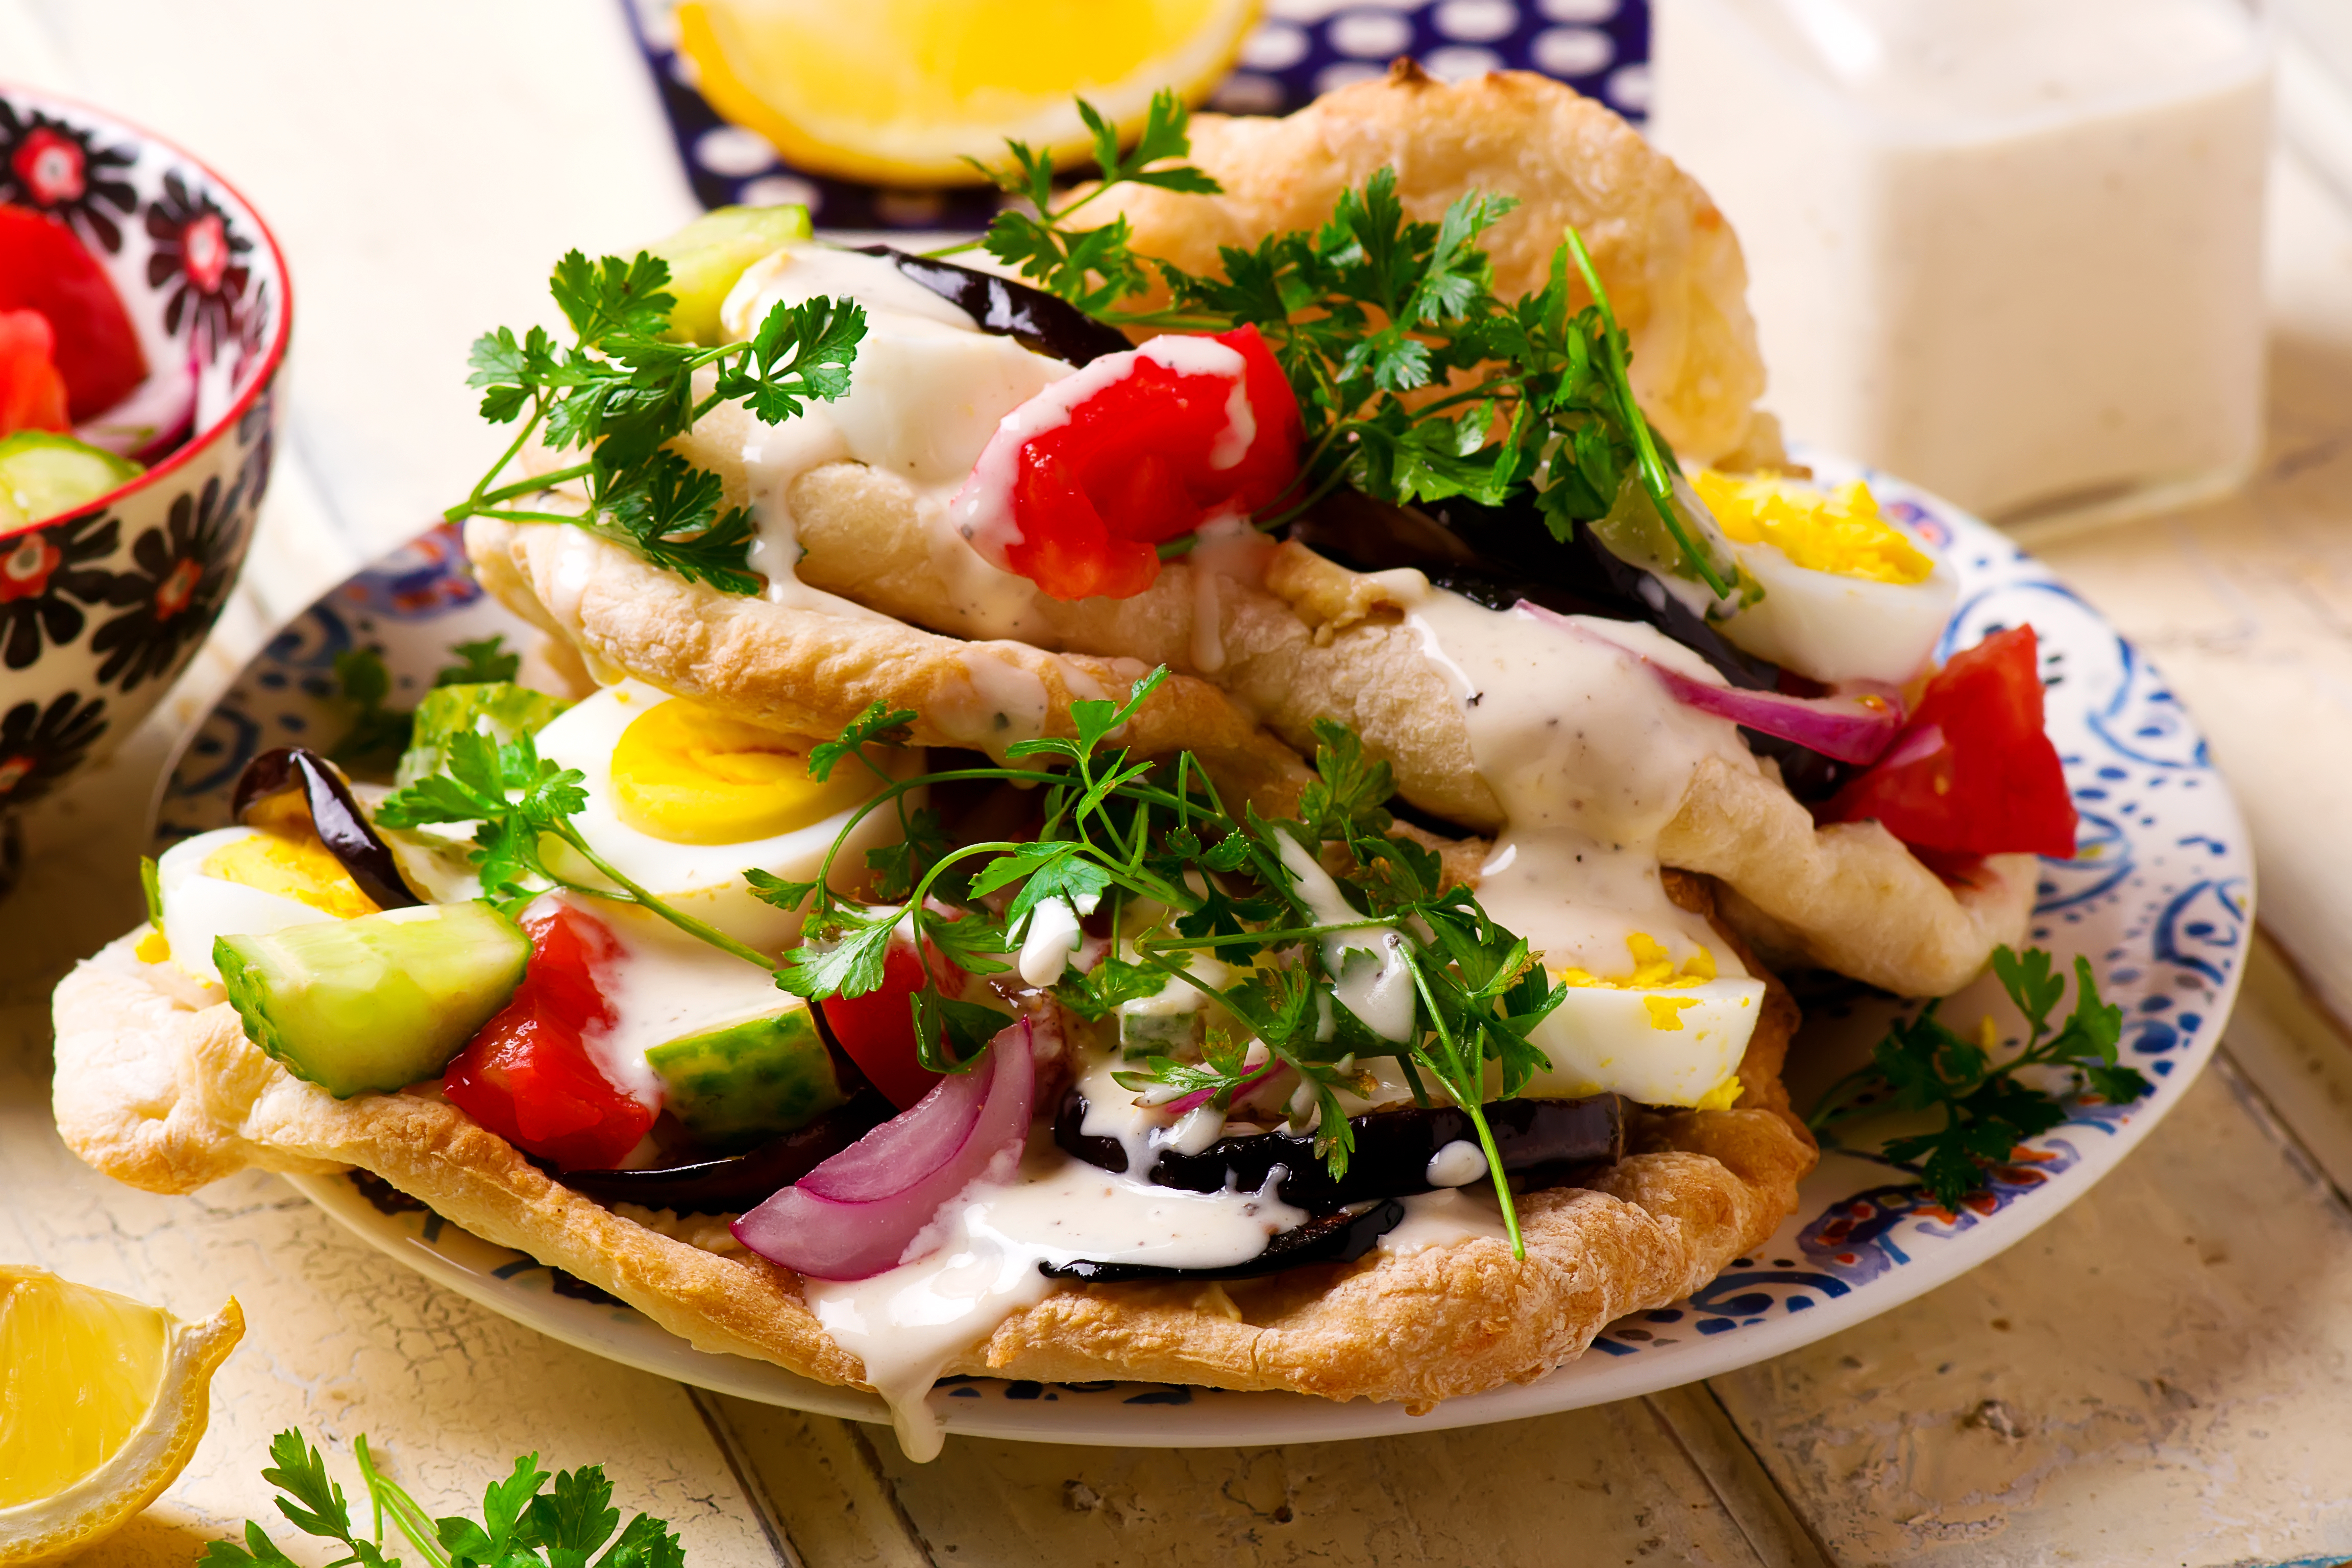 Pita bread filled with cucumber, tomato, onion, eggplant, sliced hard-boiled eggs, and yogurt sauce on a plate with parsley garnish.